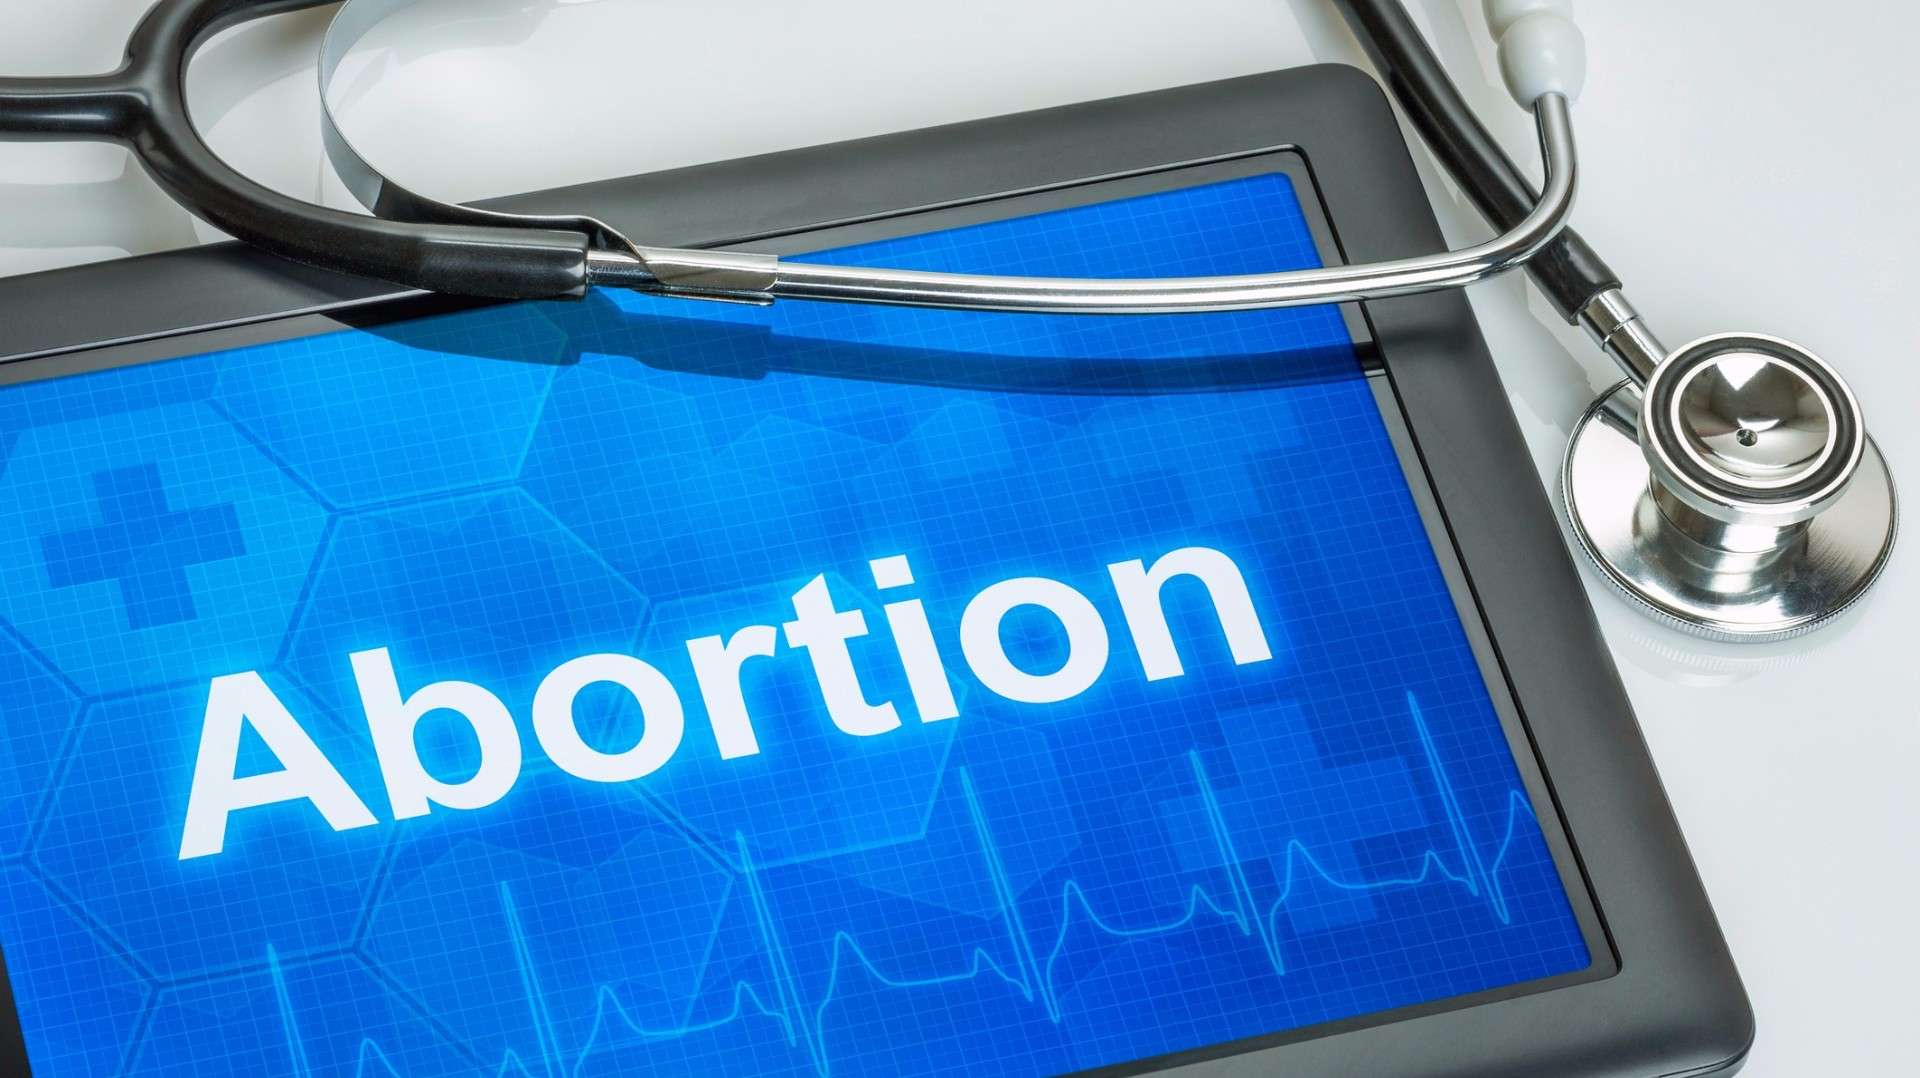 Advocate, Commentator and Church Leader Weigh in on Re-sparked Abortion Debate